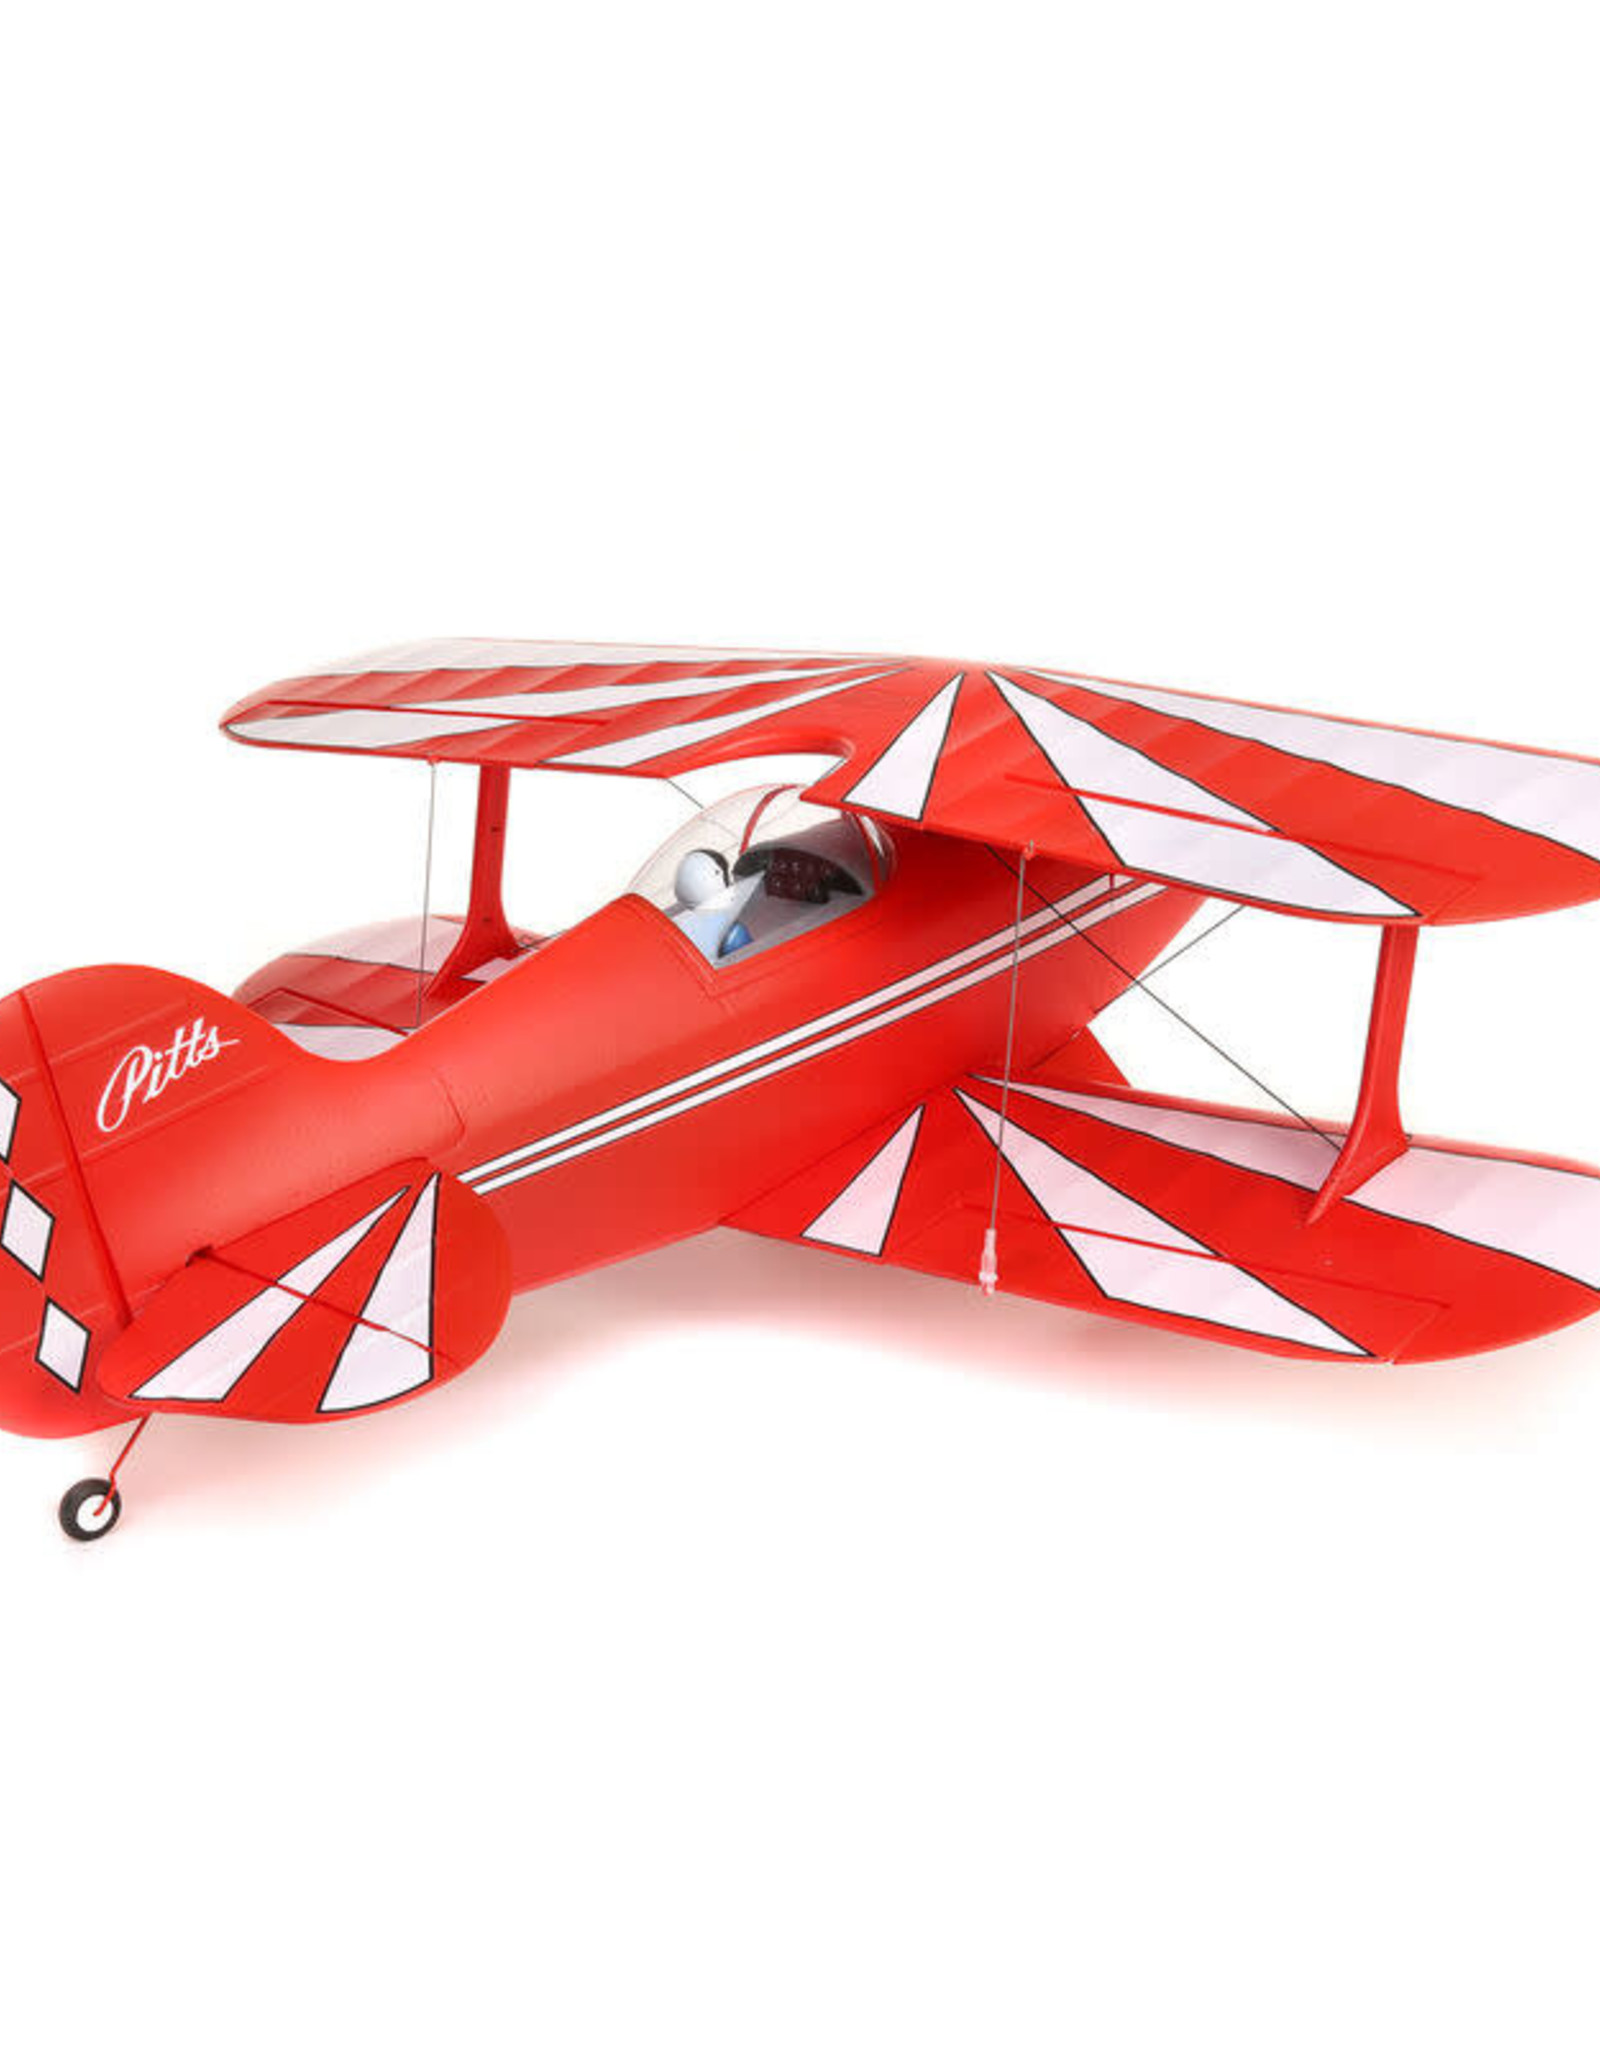 EFL EFL3550 Pitts 850mm BNF Basic w/ AS3X/SAFE Select